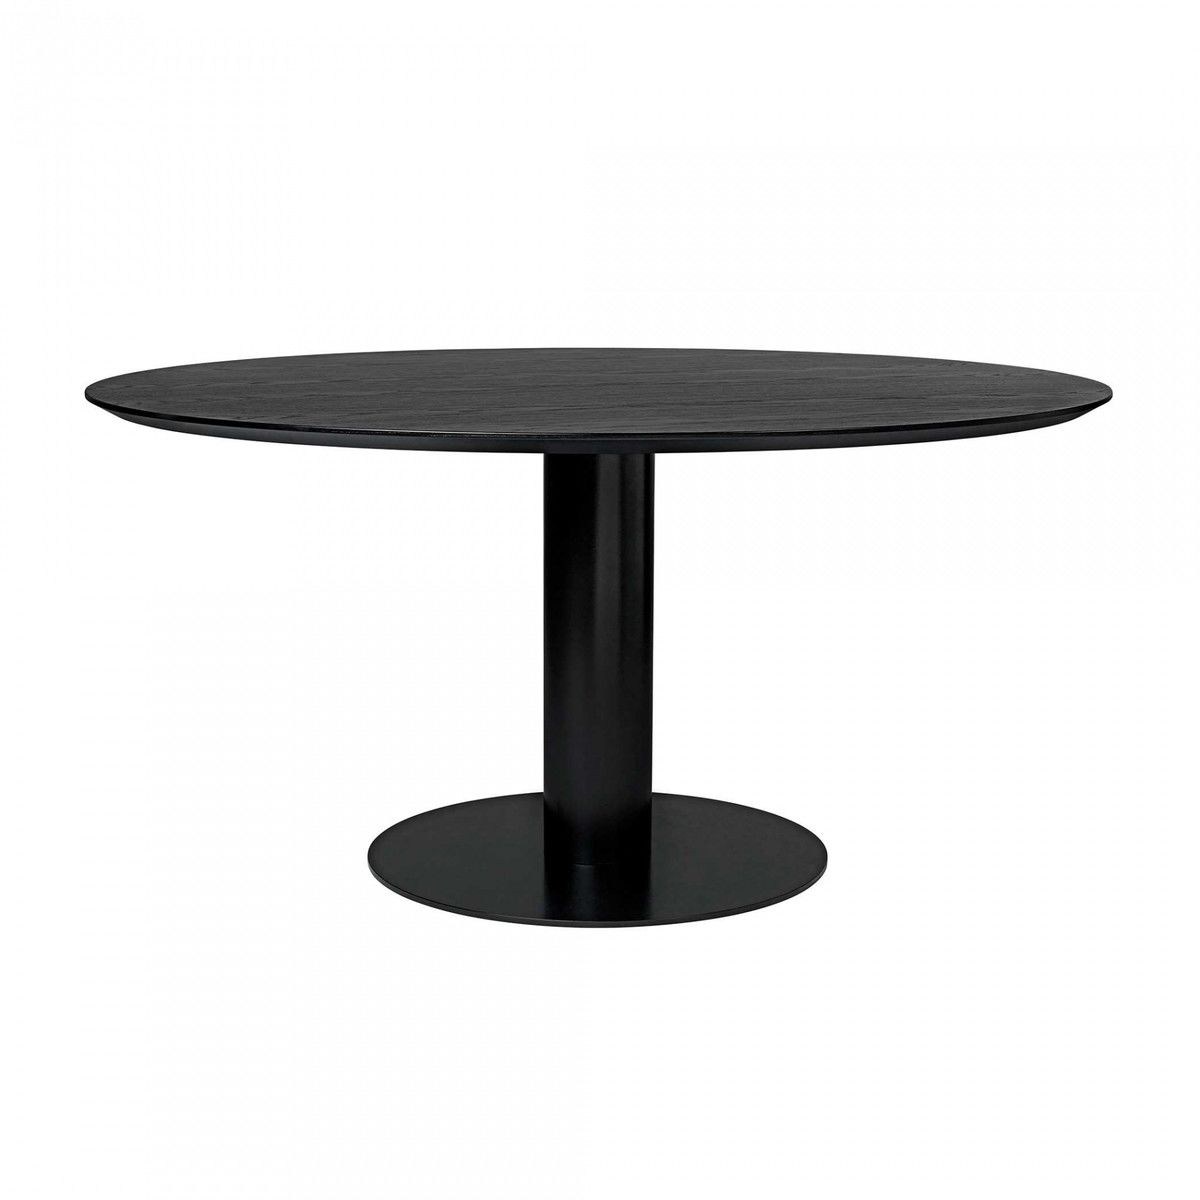 2 0 dining table tisch gestell schwarz 130cm gubi. Black Bedroom Furniture Sets. Home Design Ideas